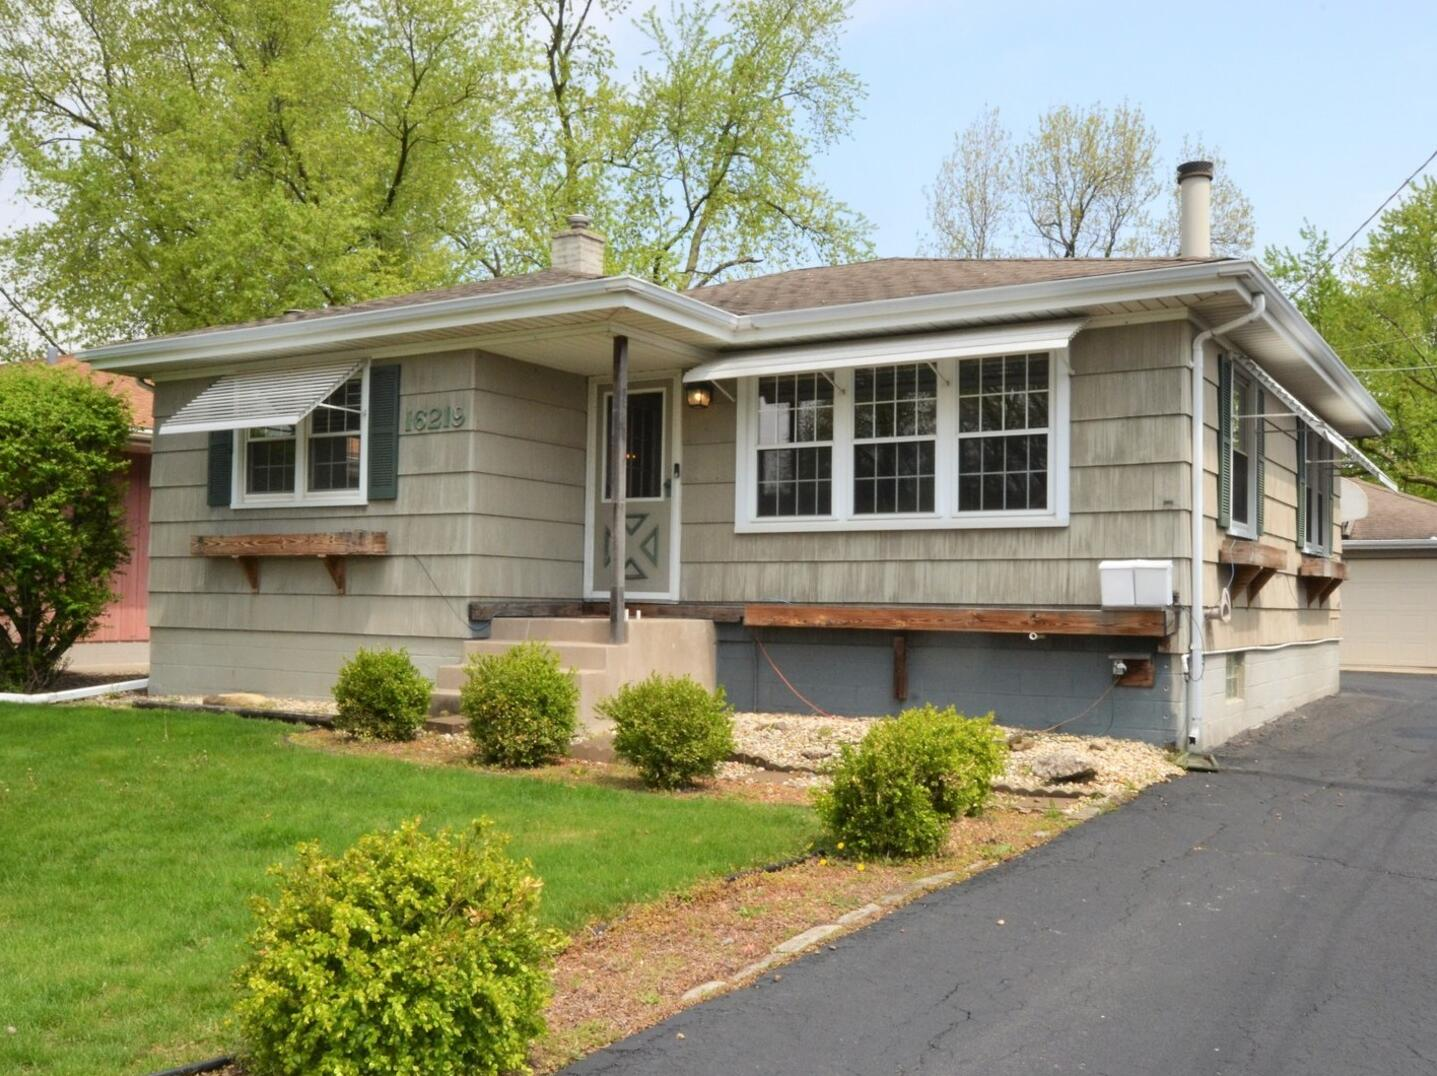 Photo of 16219 Lowell South Holland IL 60473